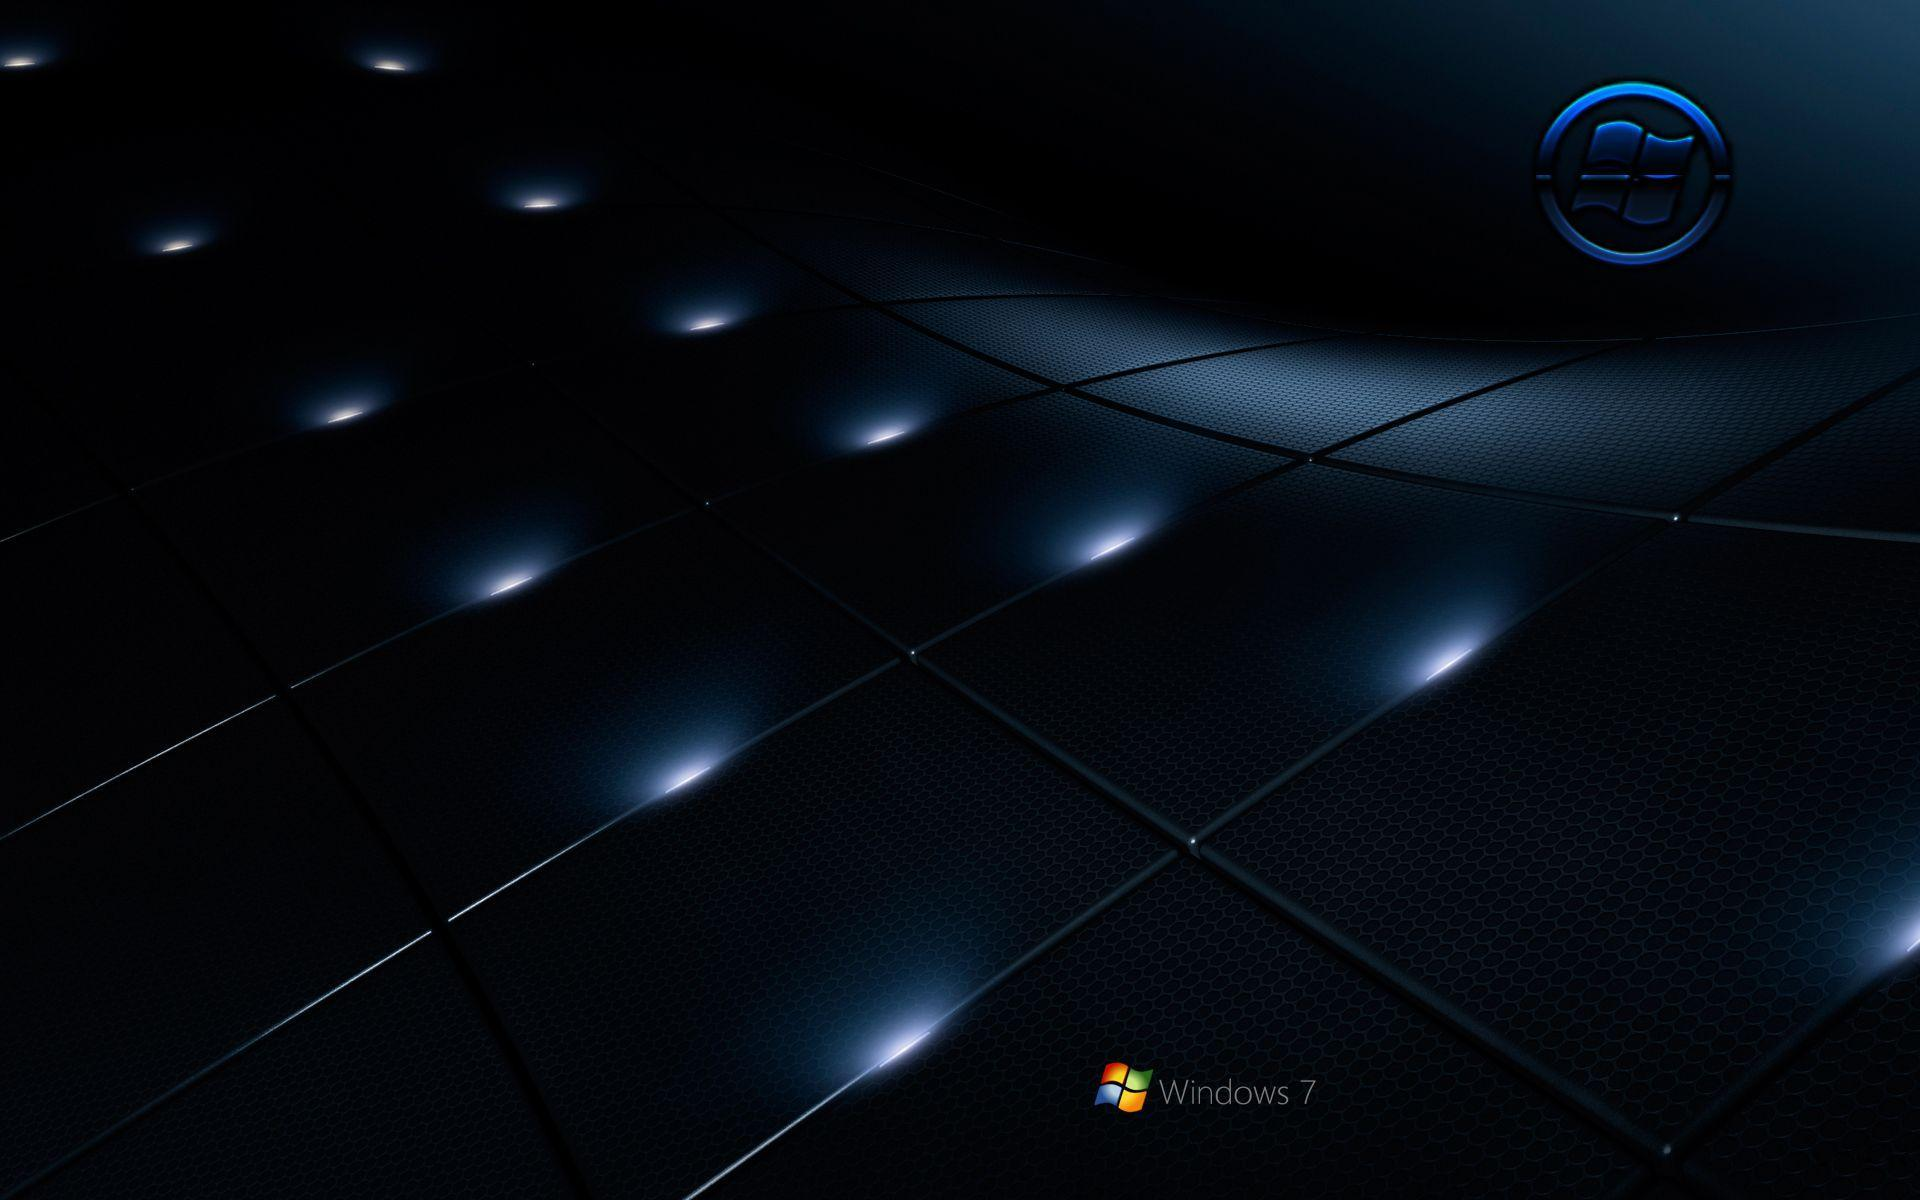 Windows 7 black wallpapers wallpaper cave for Window 3d wallpaper